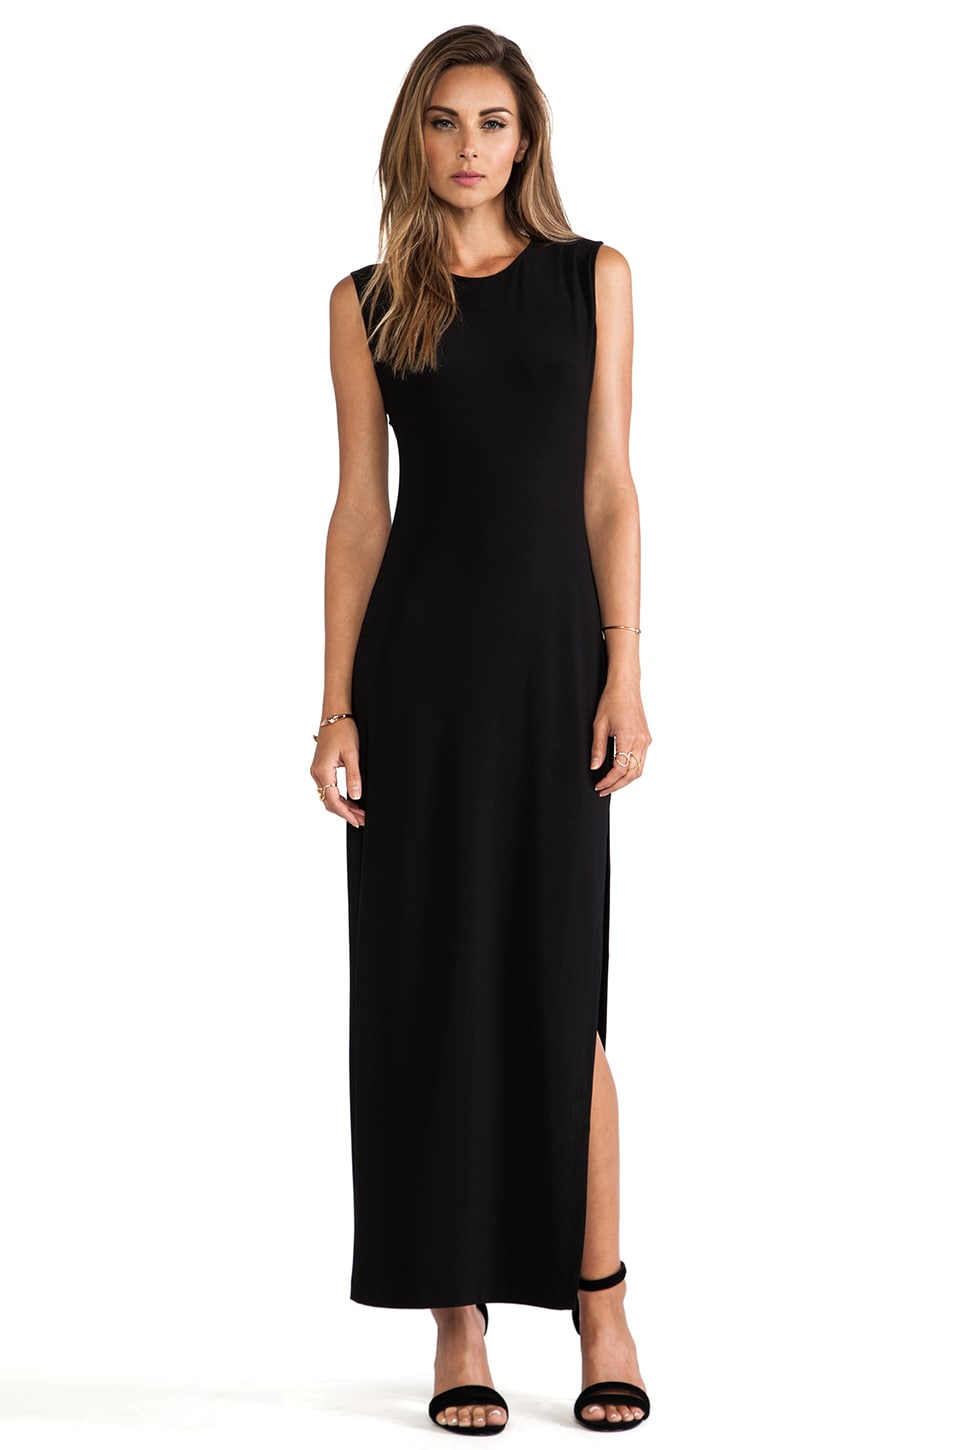 Norma Kamali KAMALIKULTURE Sleeveless Maxi Dress in Solid Black